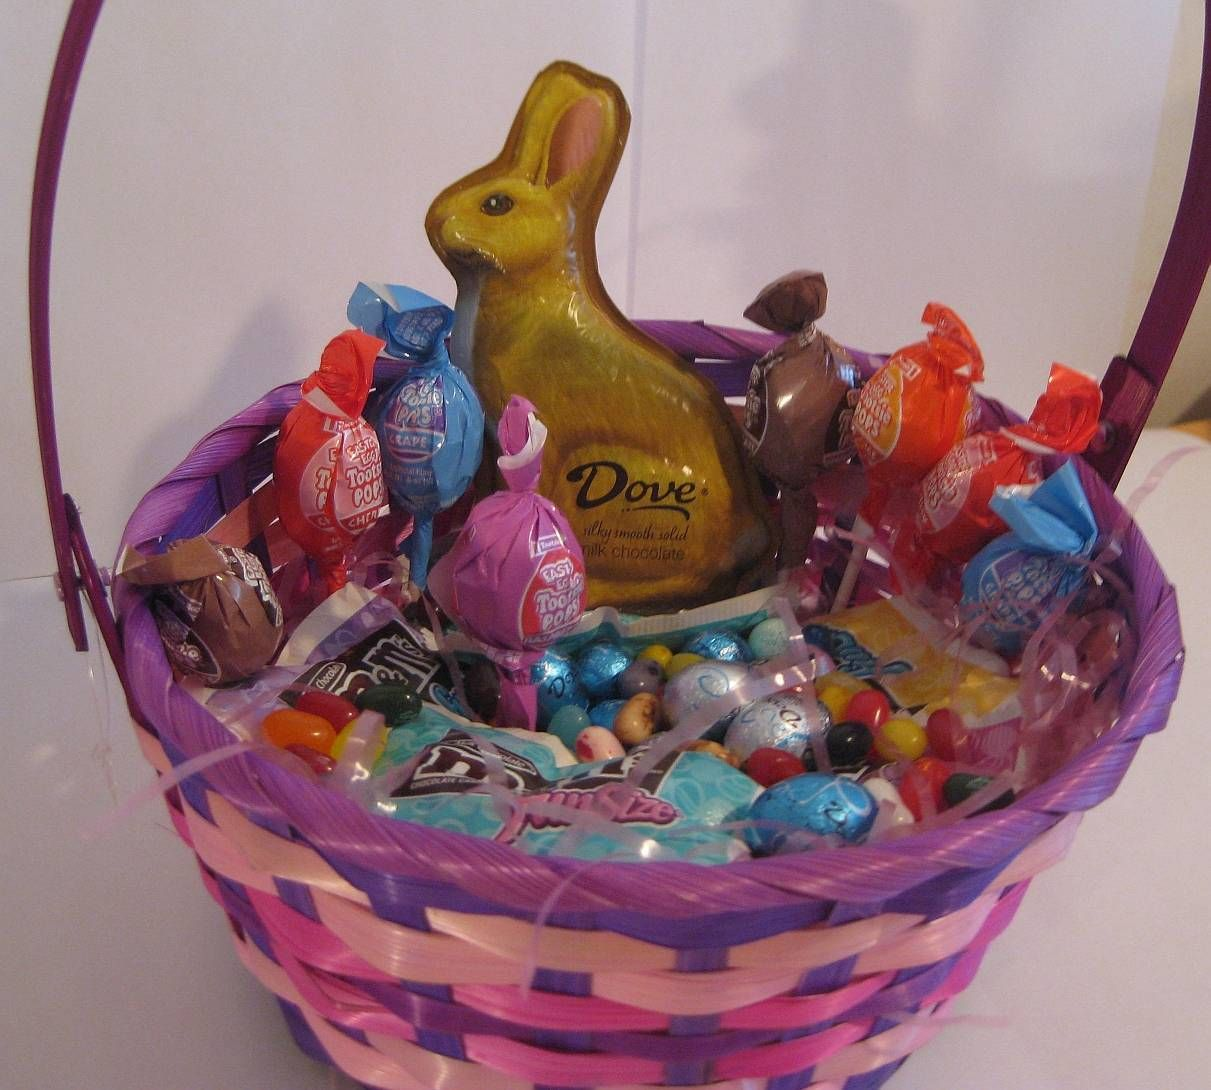 The Best Candy for a Gluten-Free Easter | Gluten free ...